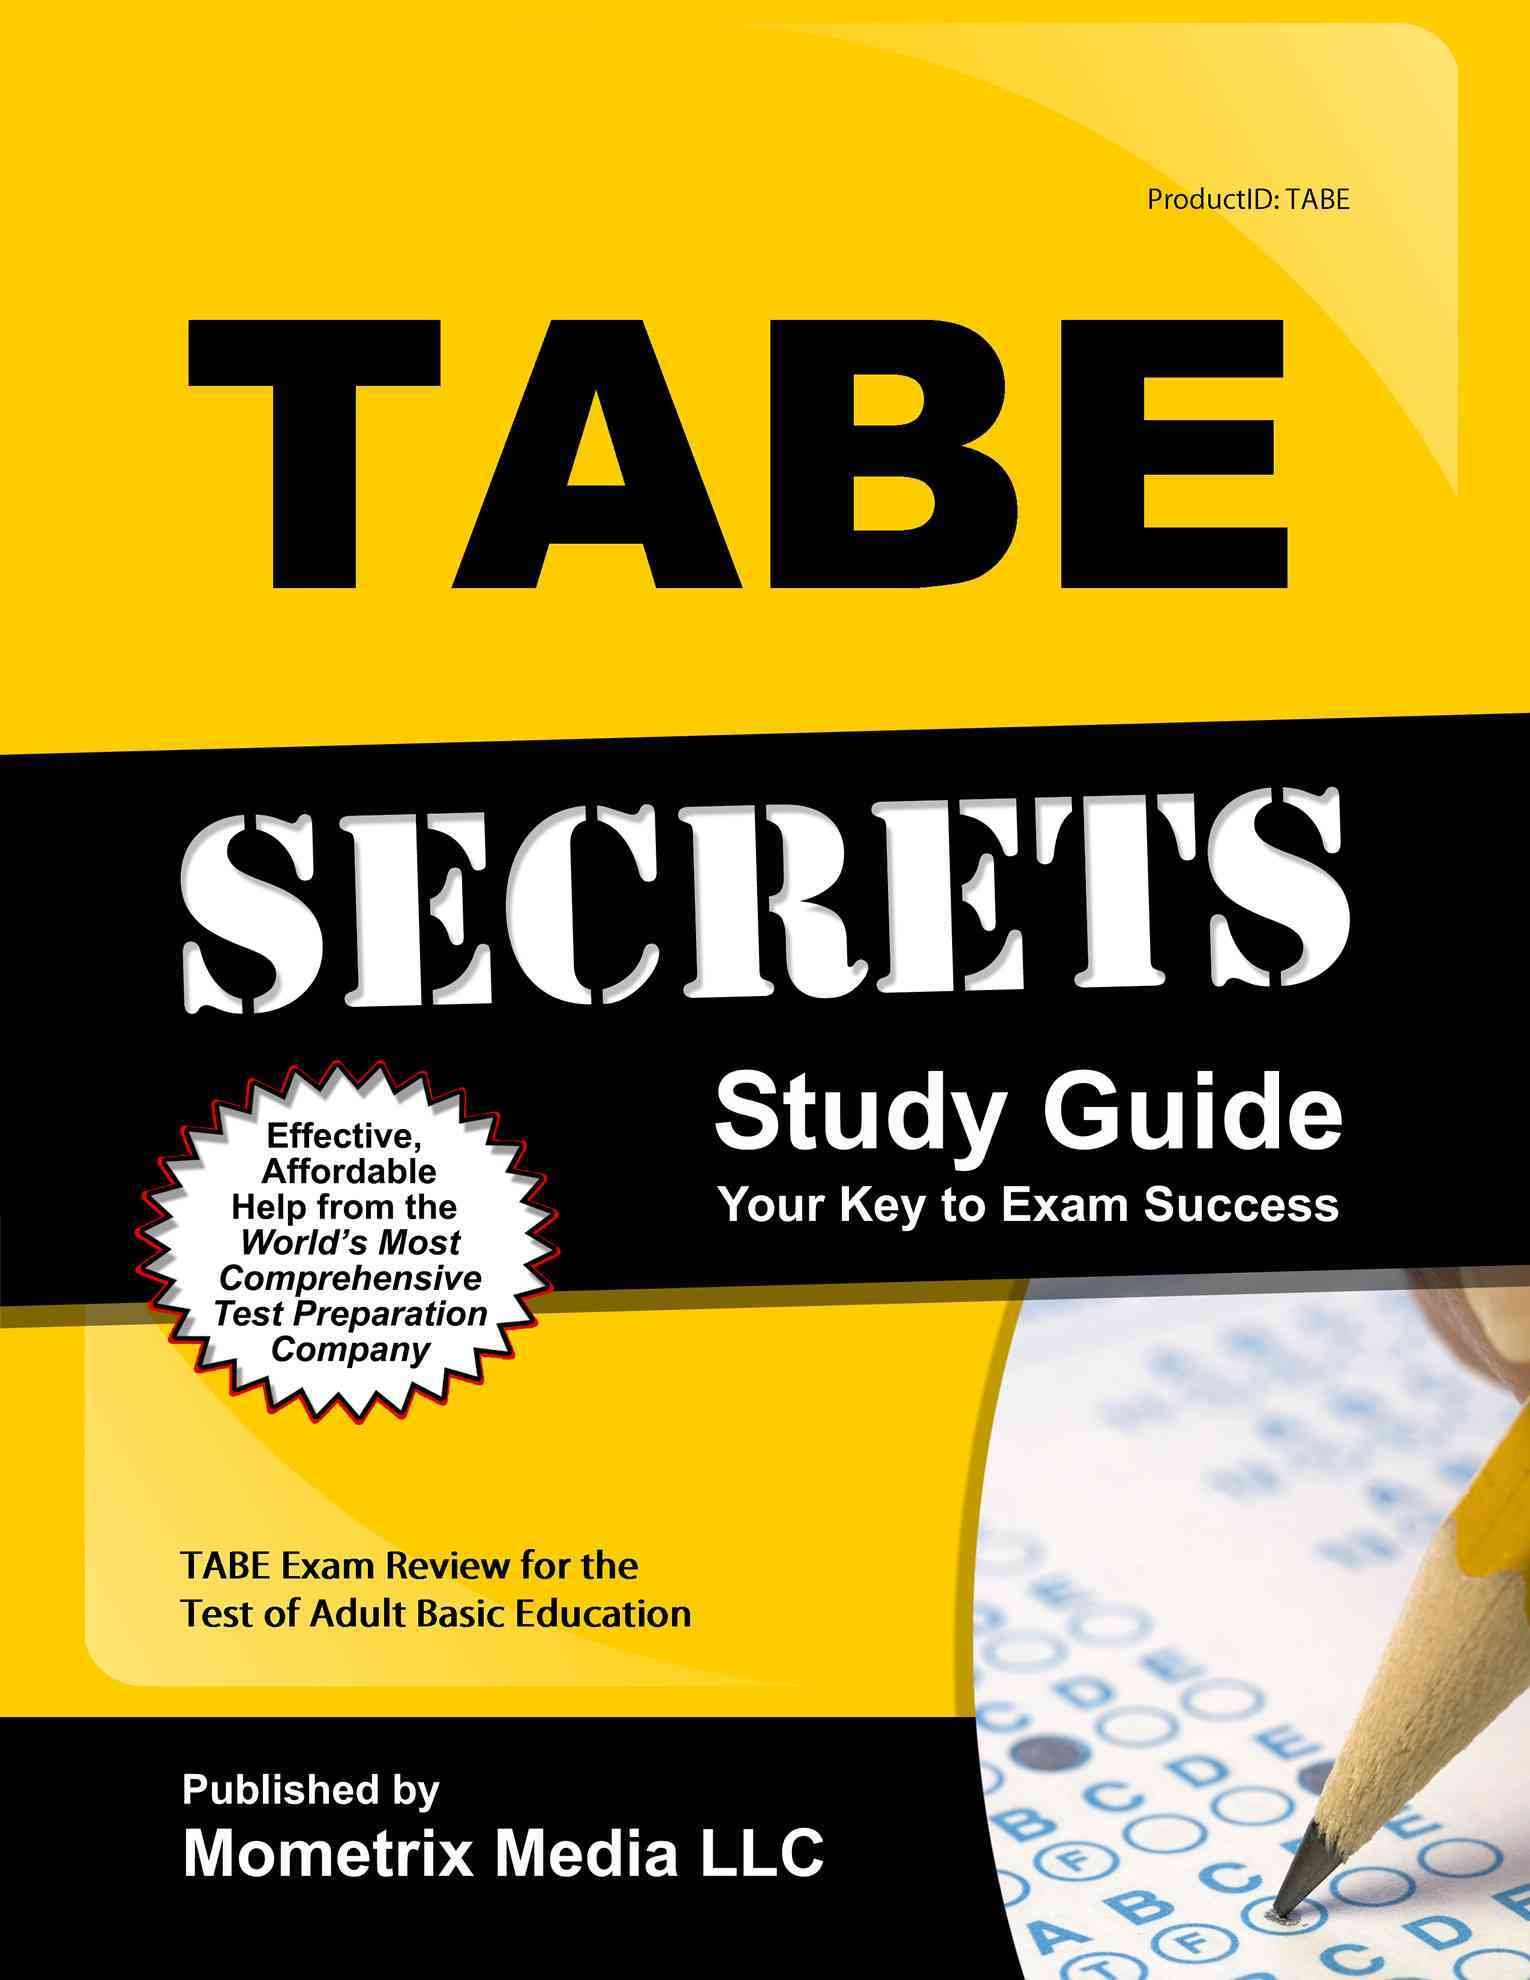 Tabe Secrets Study Guide By Tabe Exam Secrets (EDT) [Study Guide Edition]